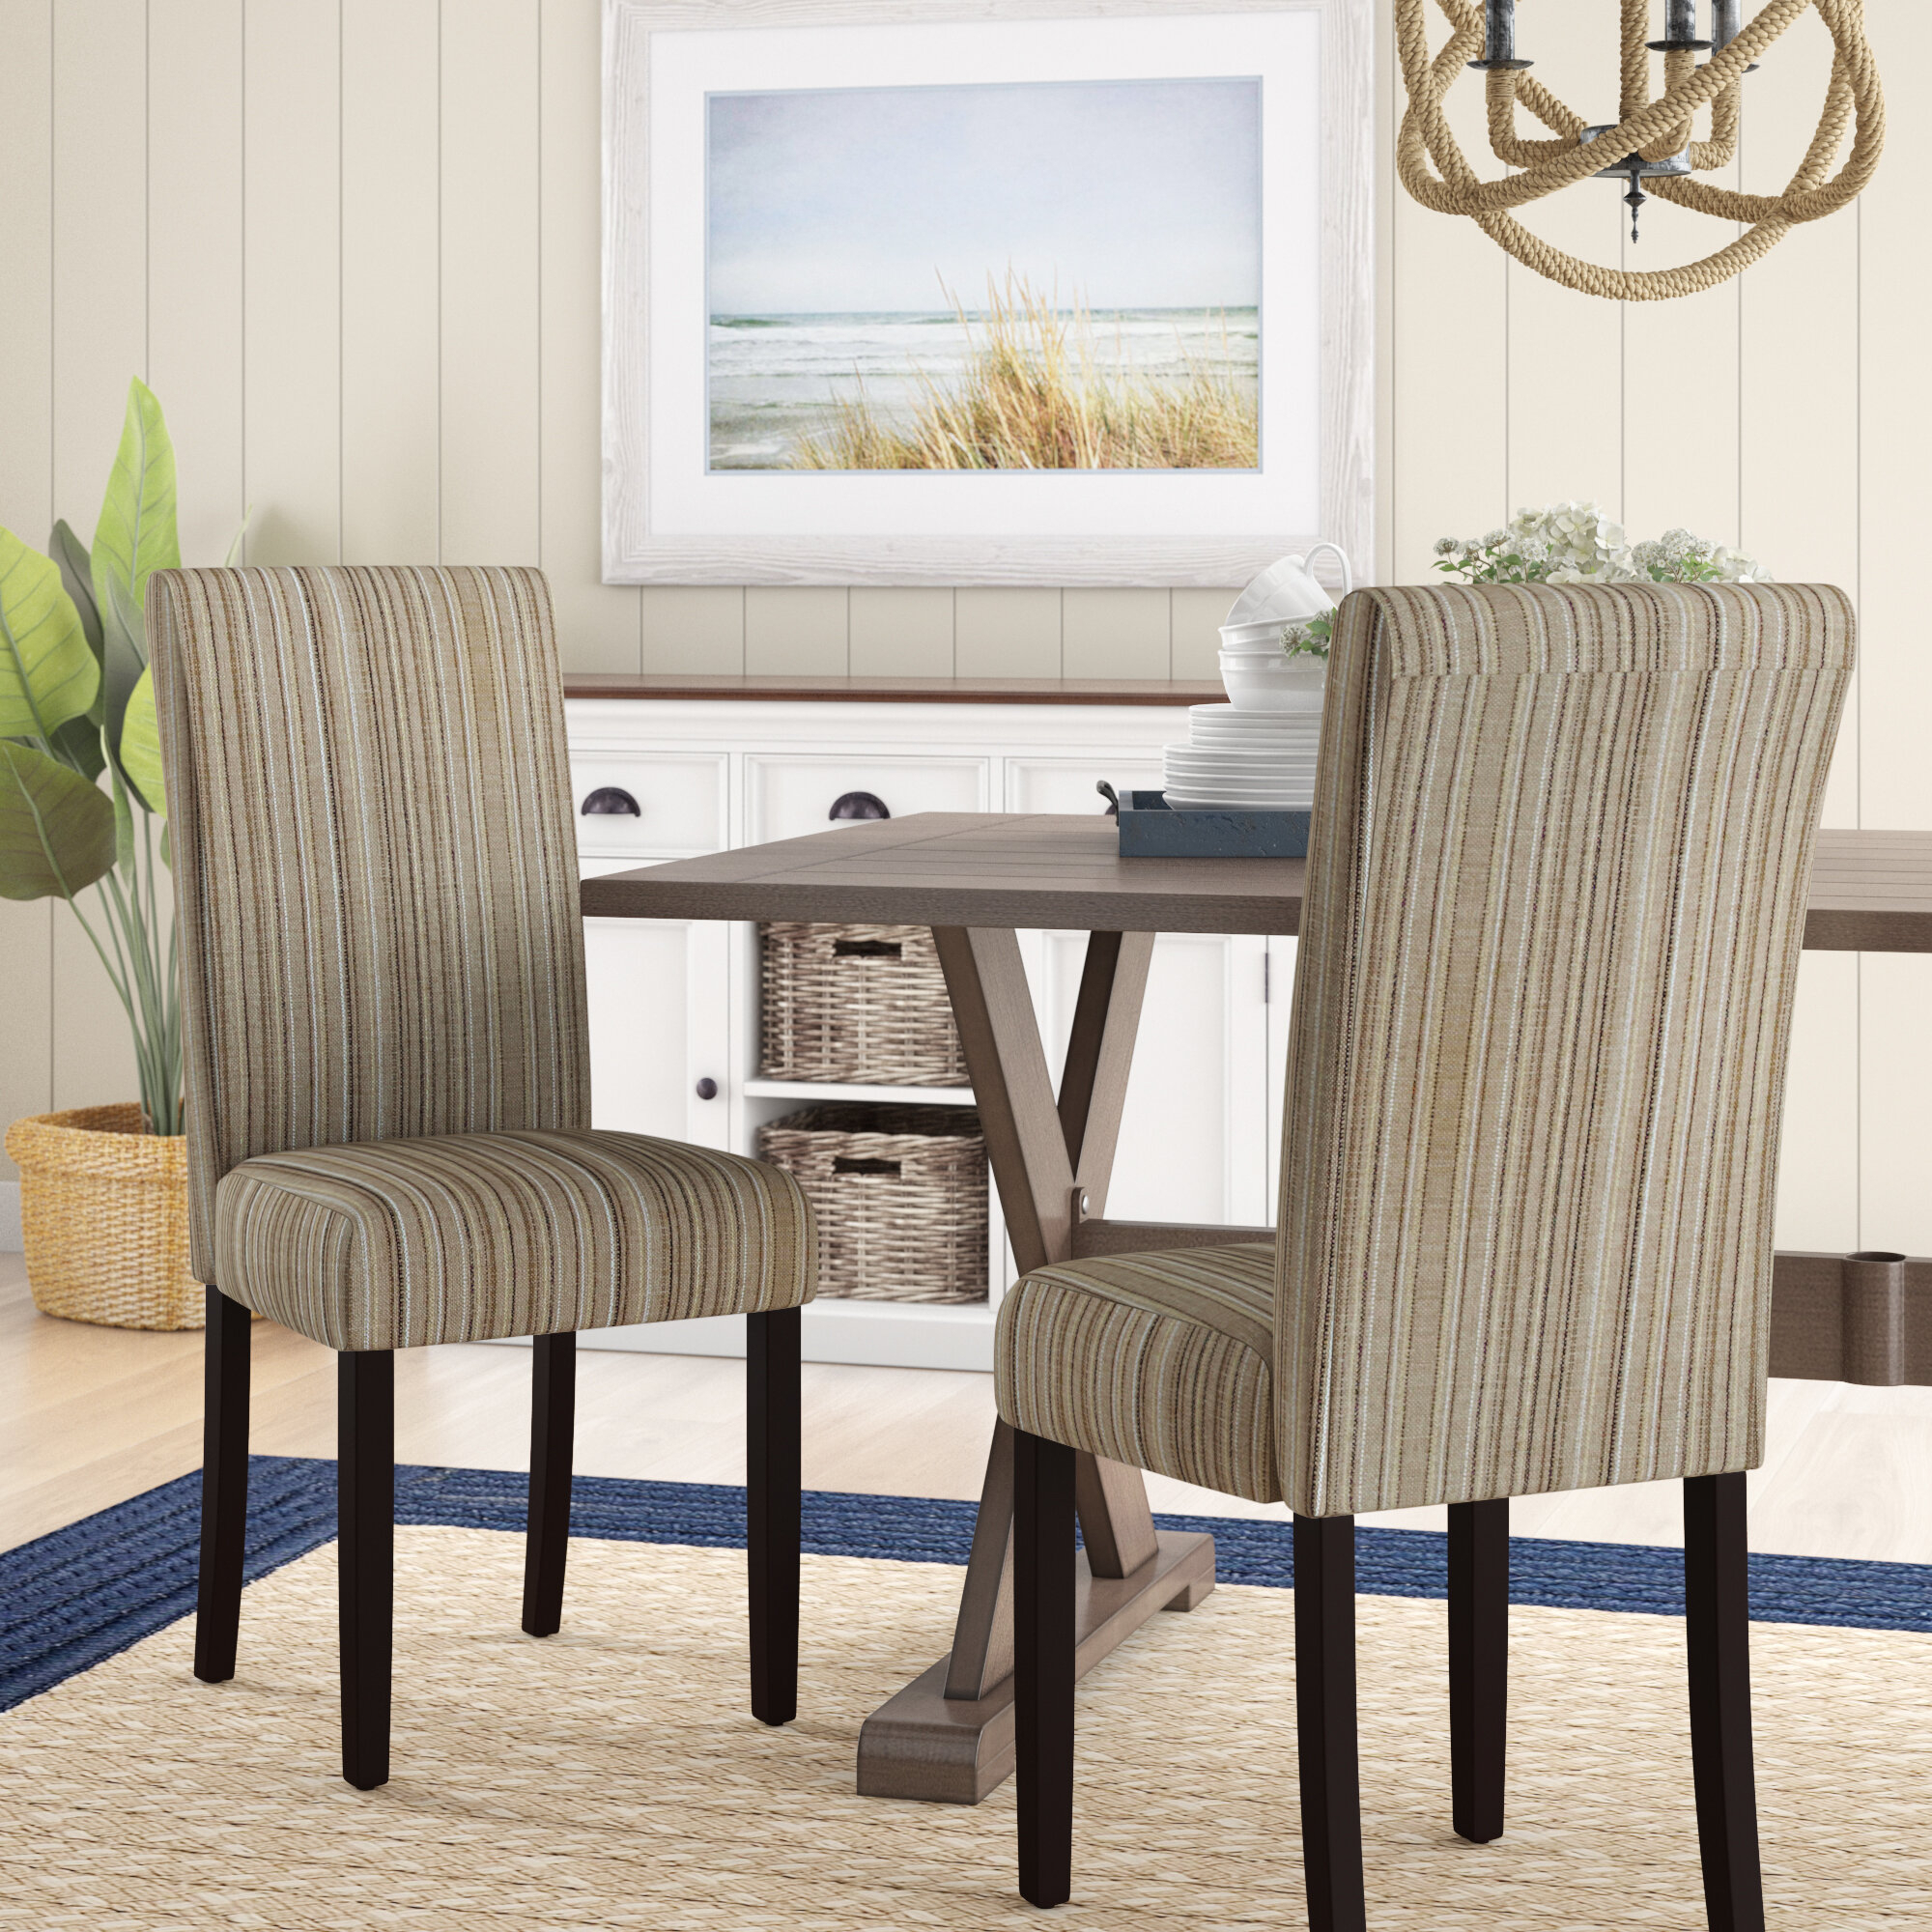 Coastal Parsons Kitchen & Dining Chairs You'Ll Love In 2021 For Aime Upholstered Parsons Chairs In Beige (View 11 of 15)